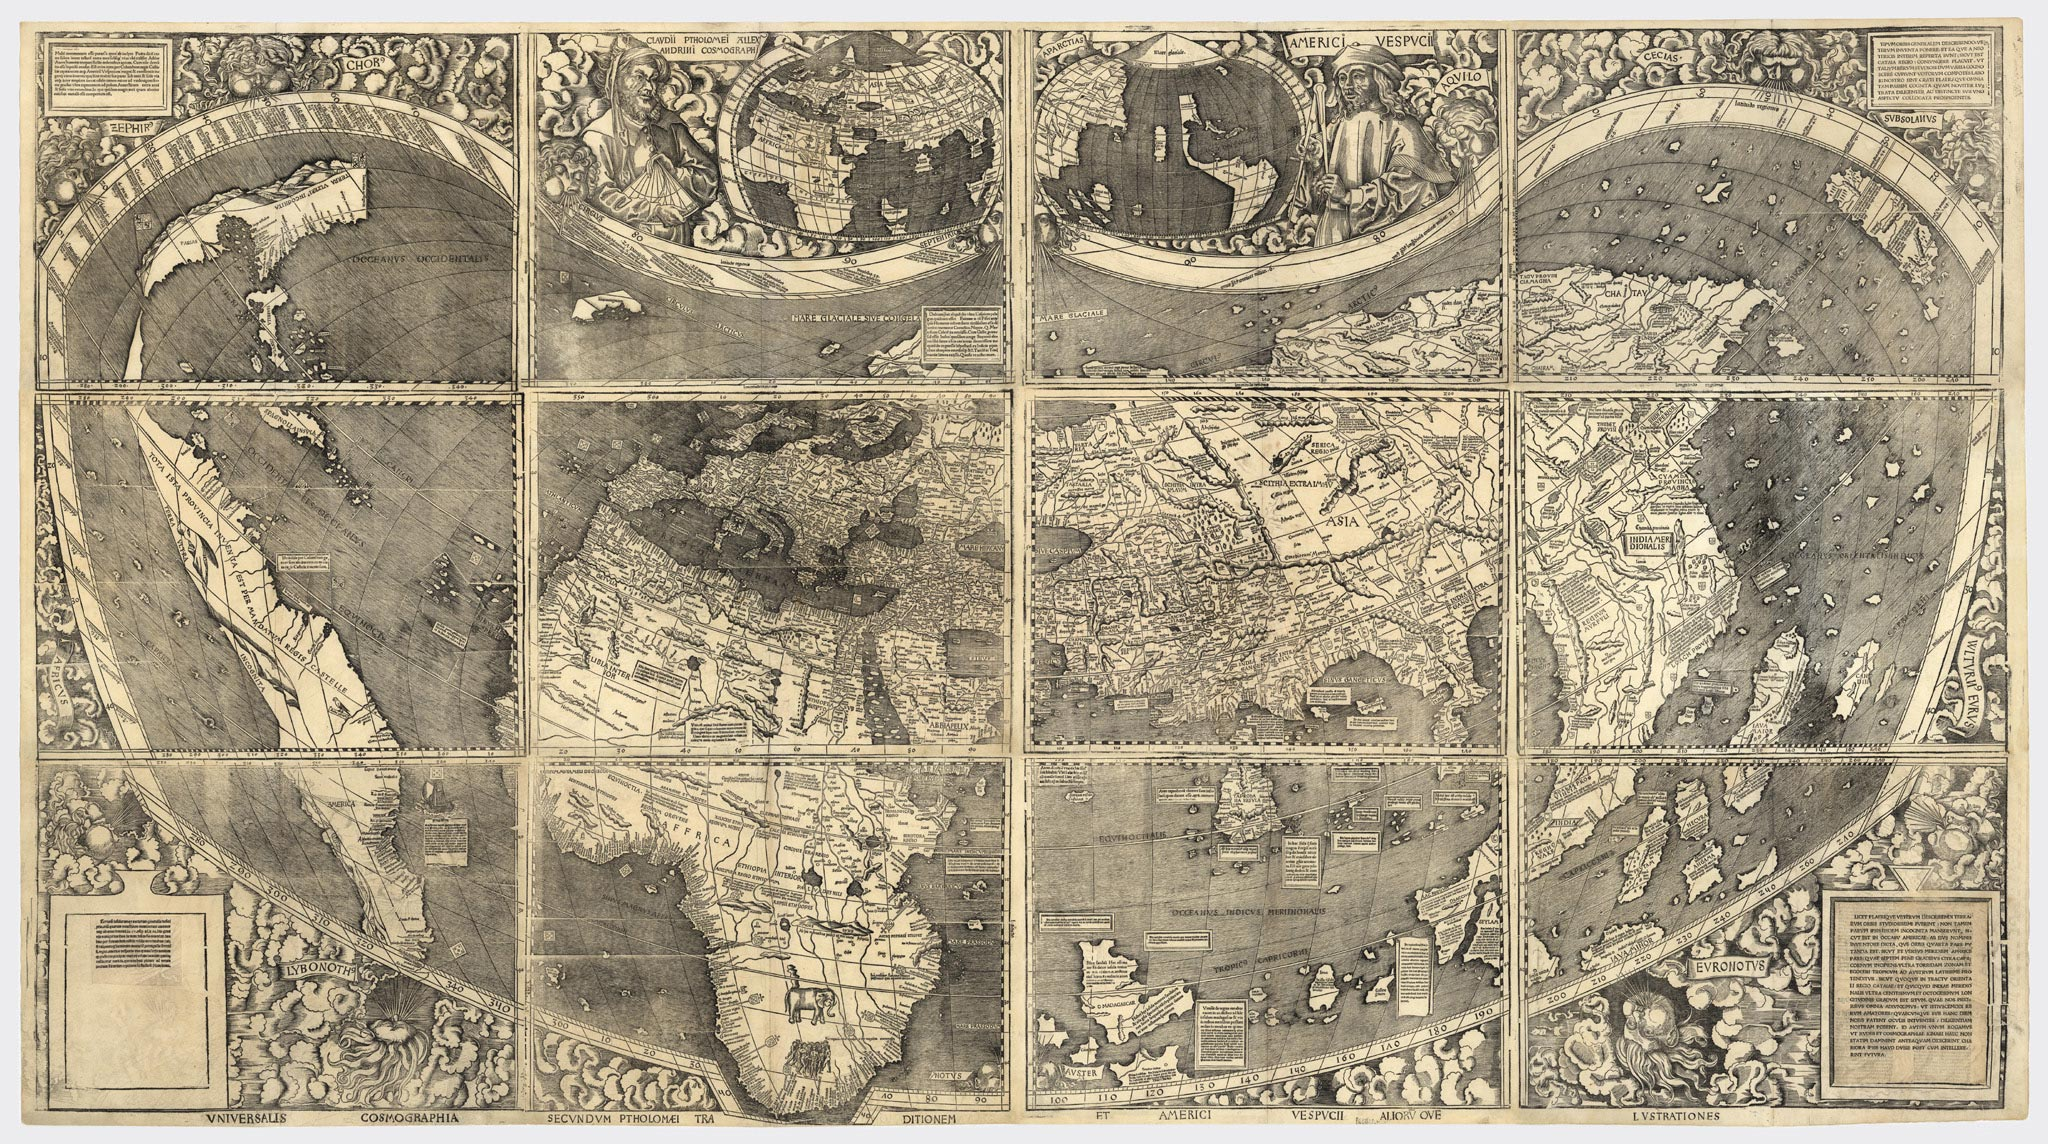 Oldest Known World Map.12 Maps That Changed The World The Atlantic